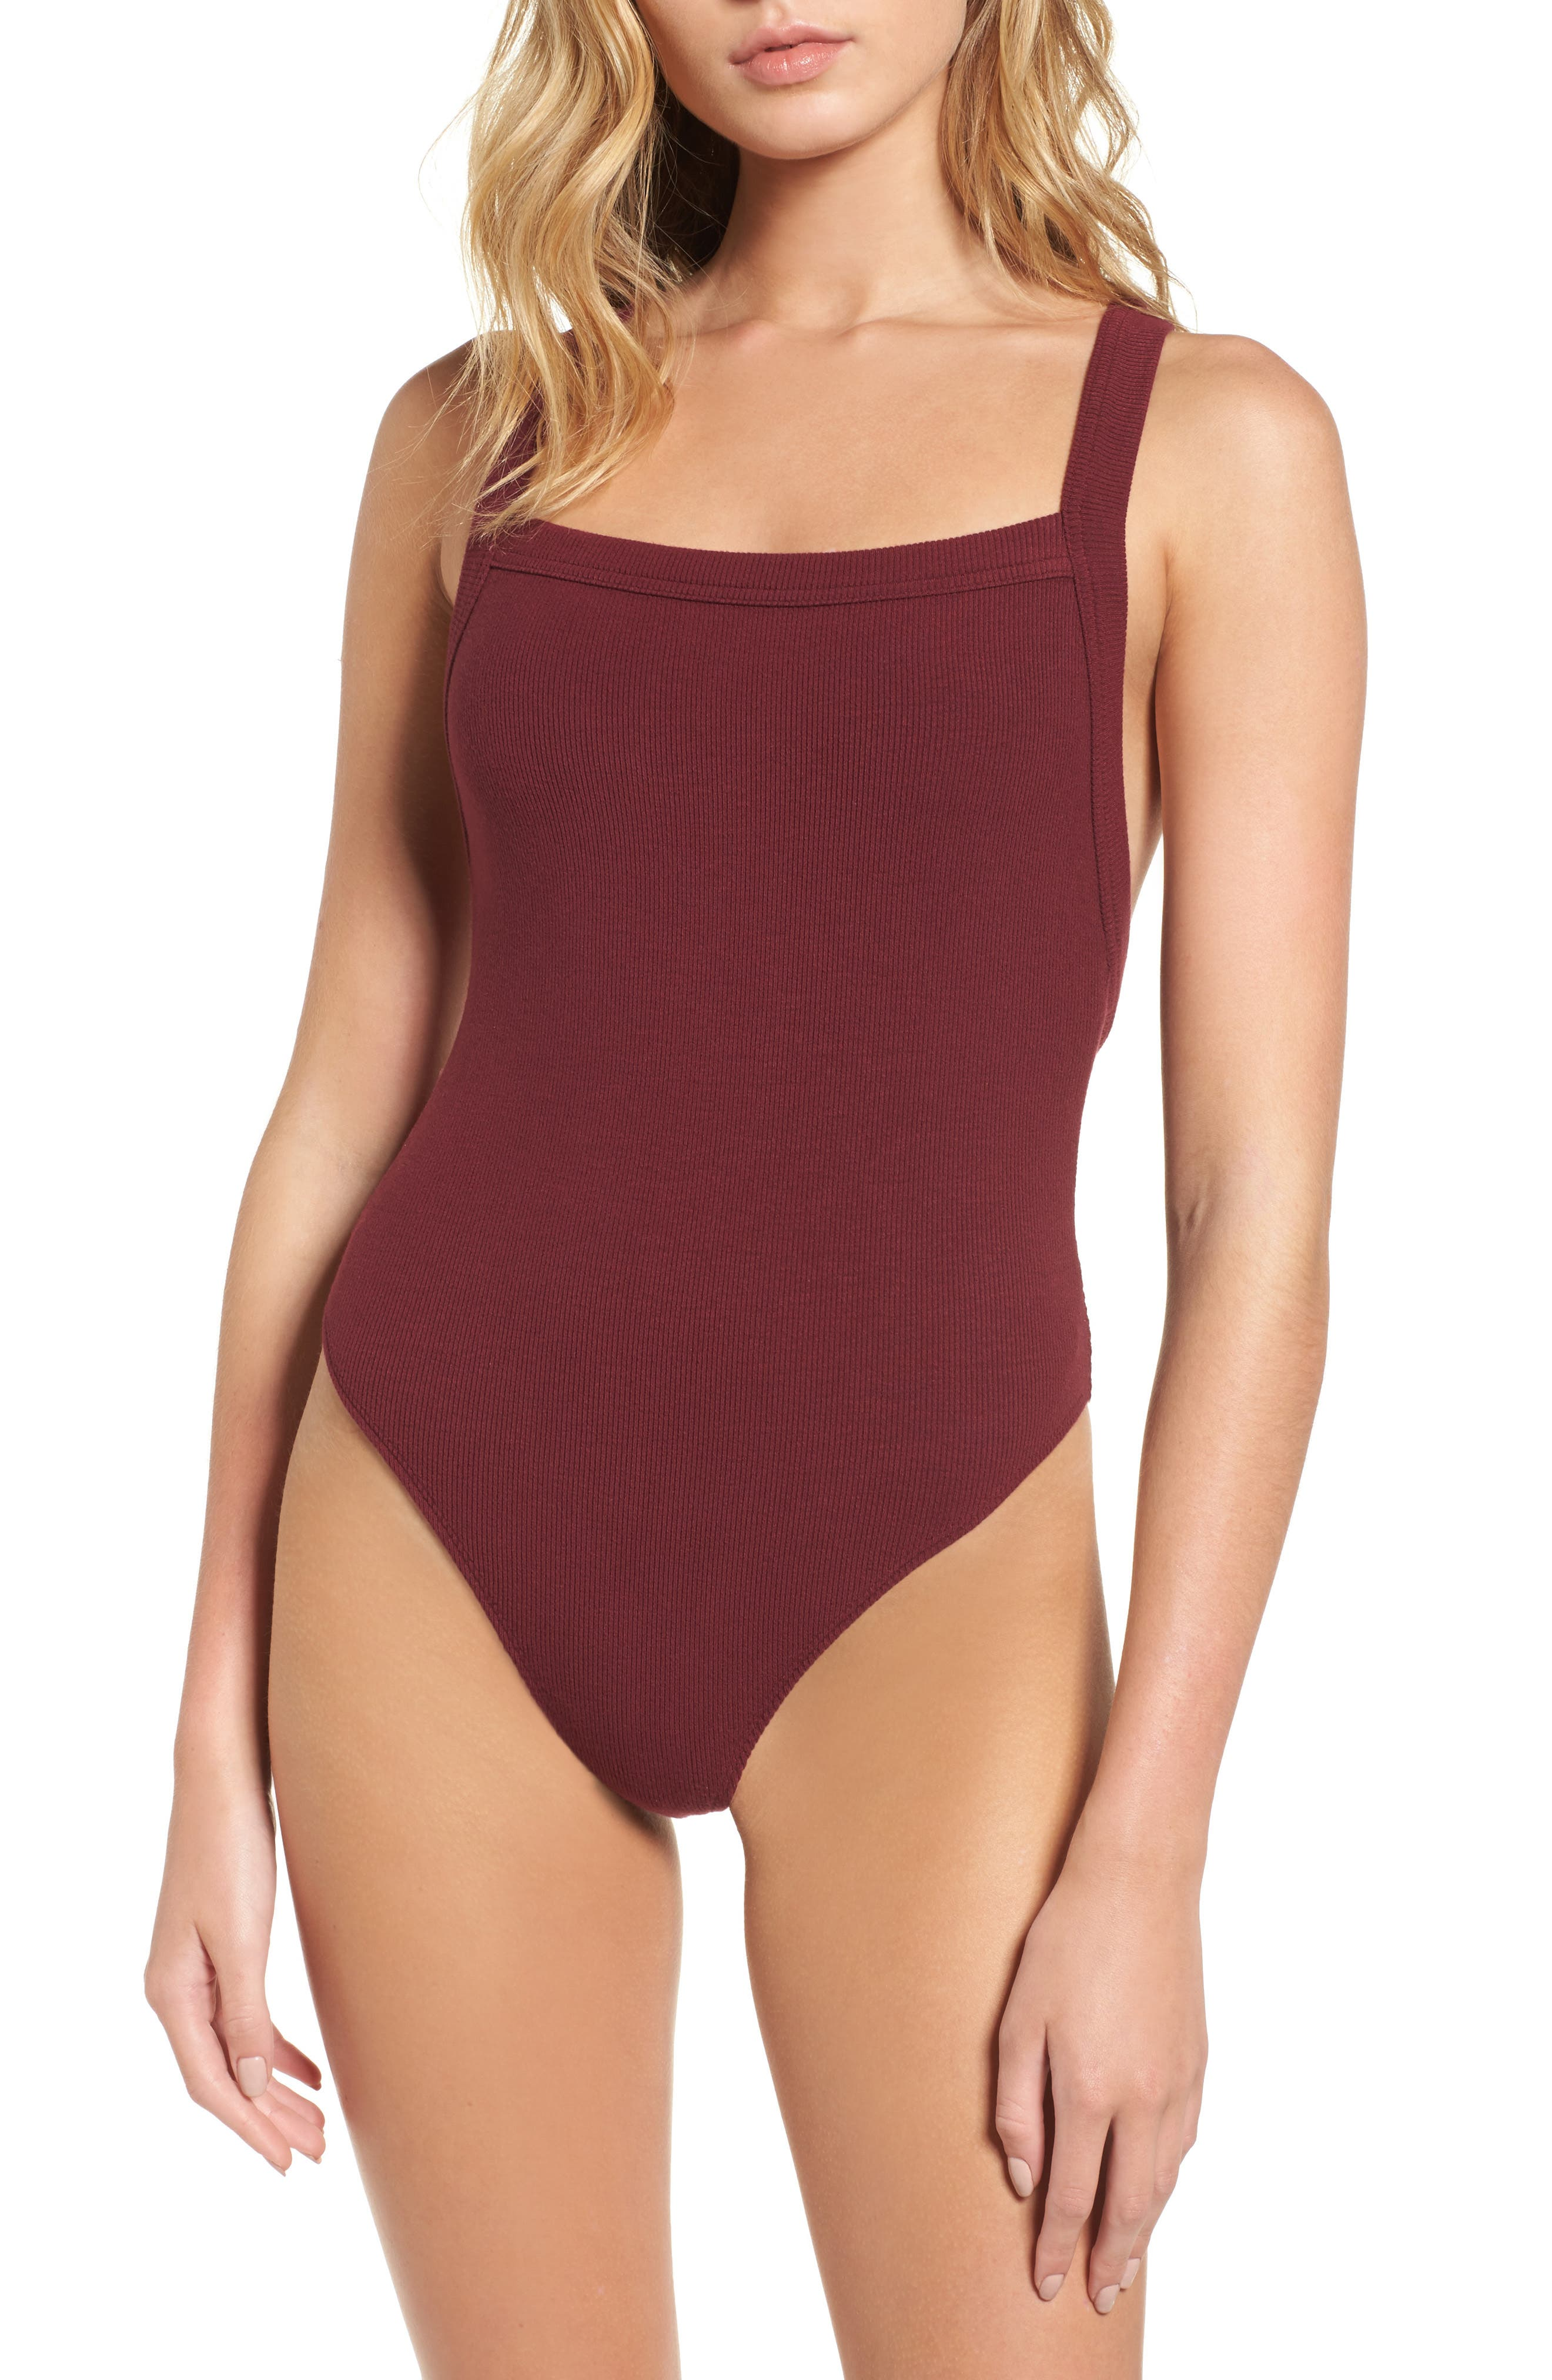 Thong Bodysuit,                             Alternate thumbnail 4, color,                             930